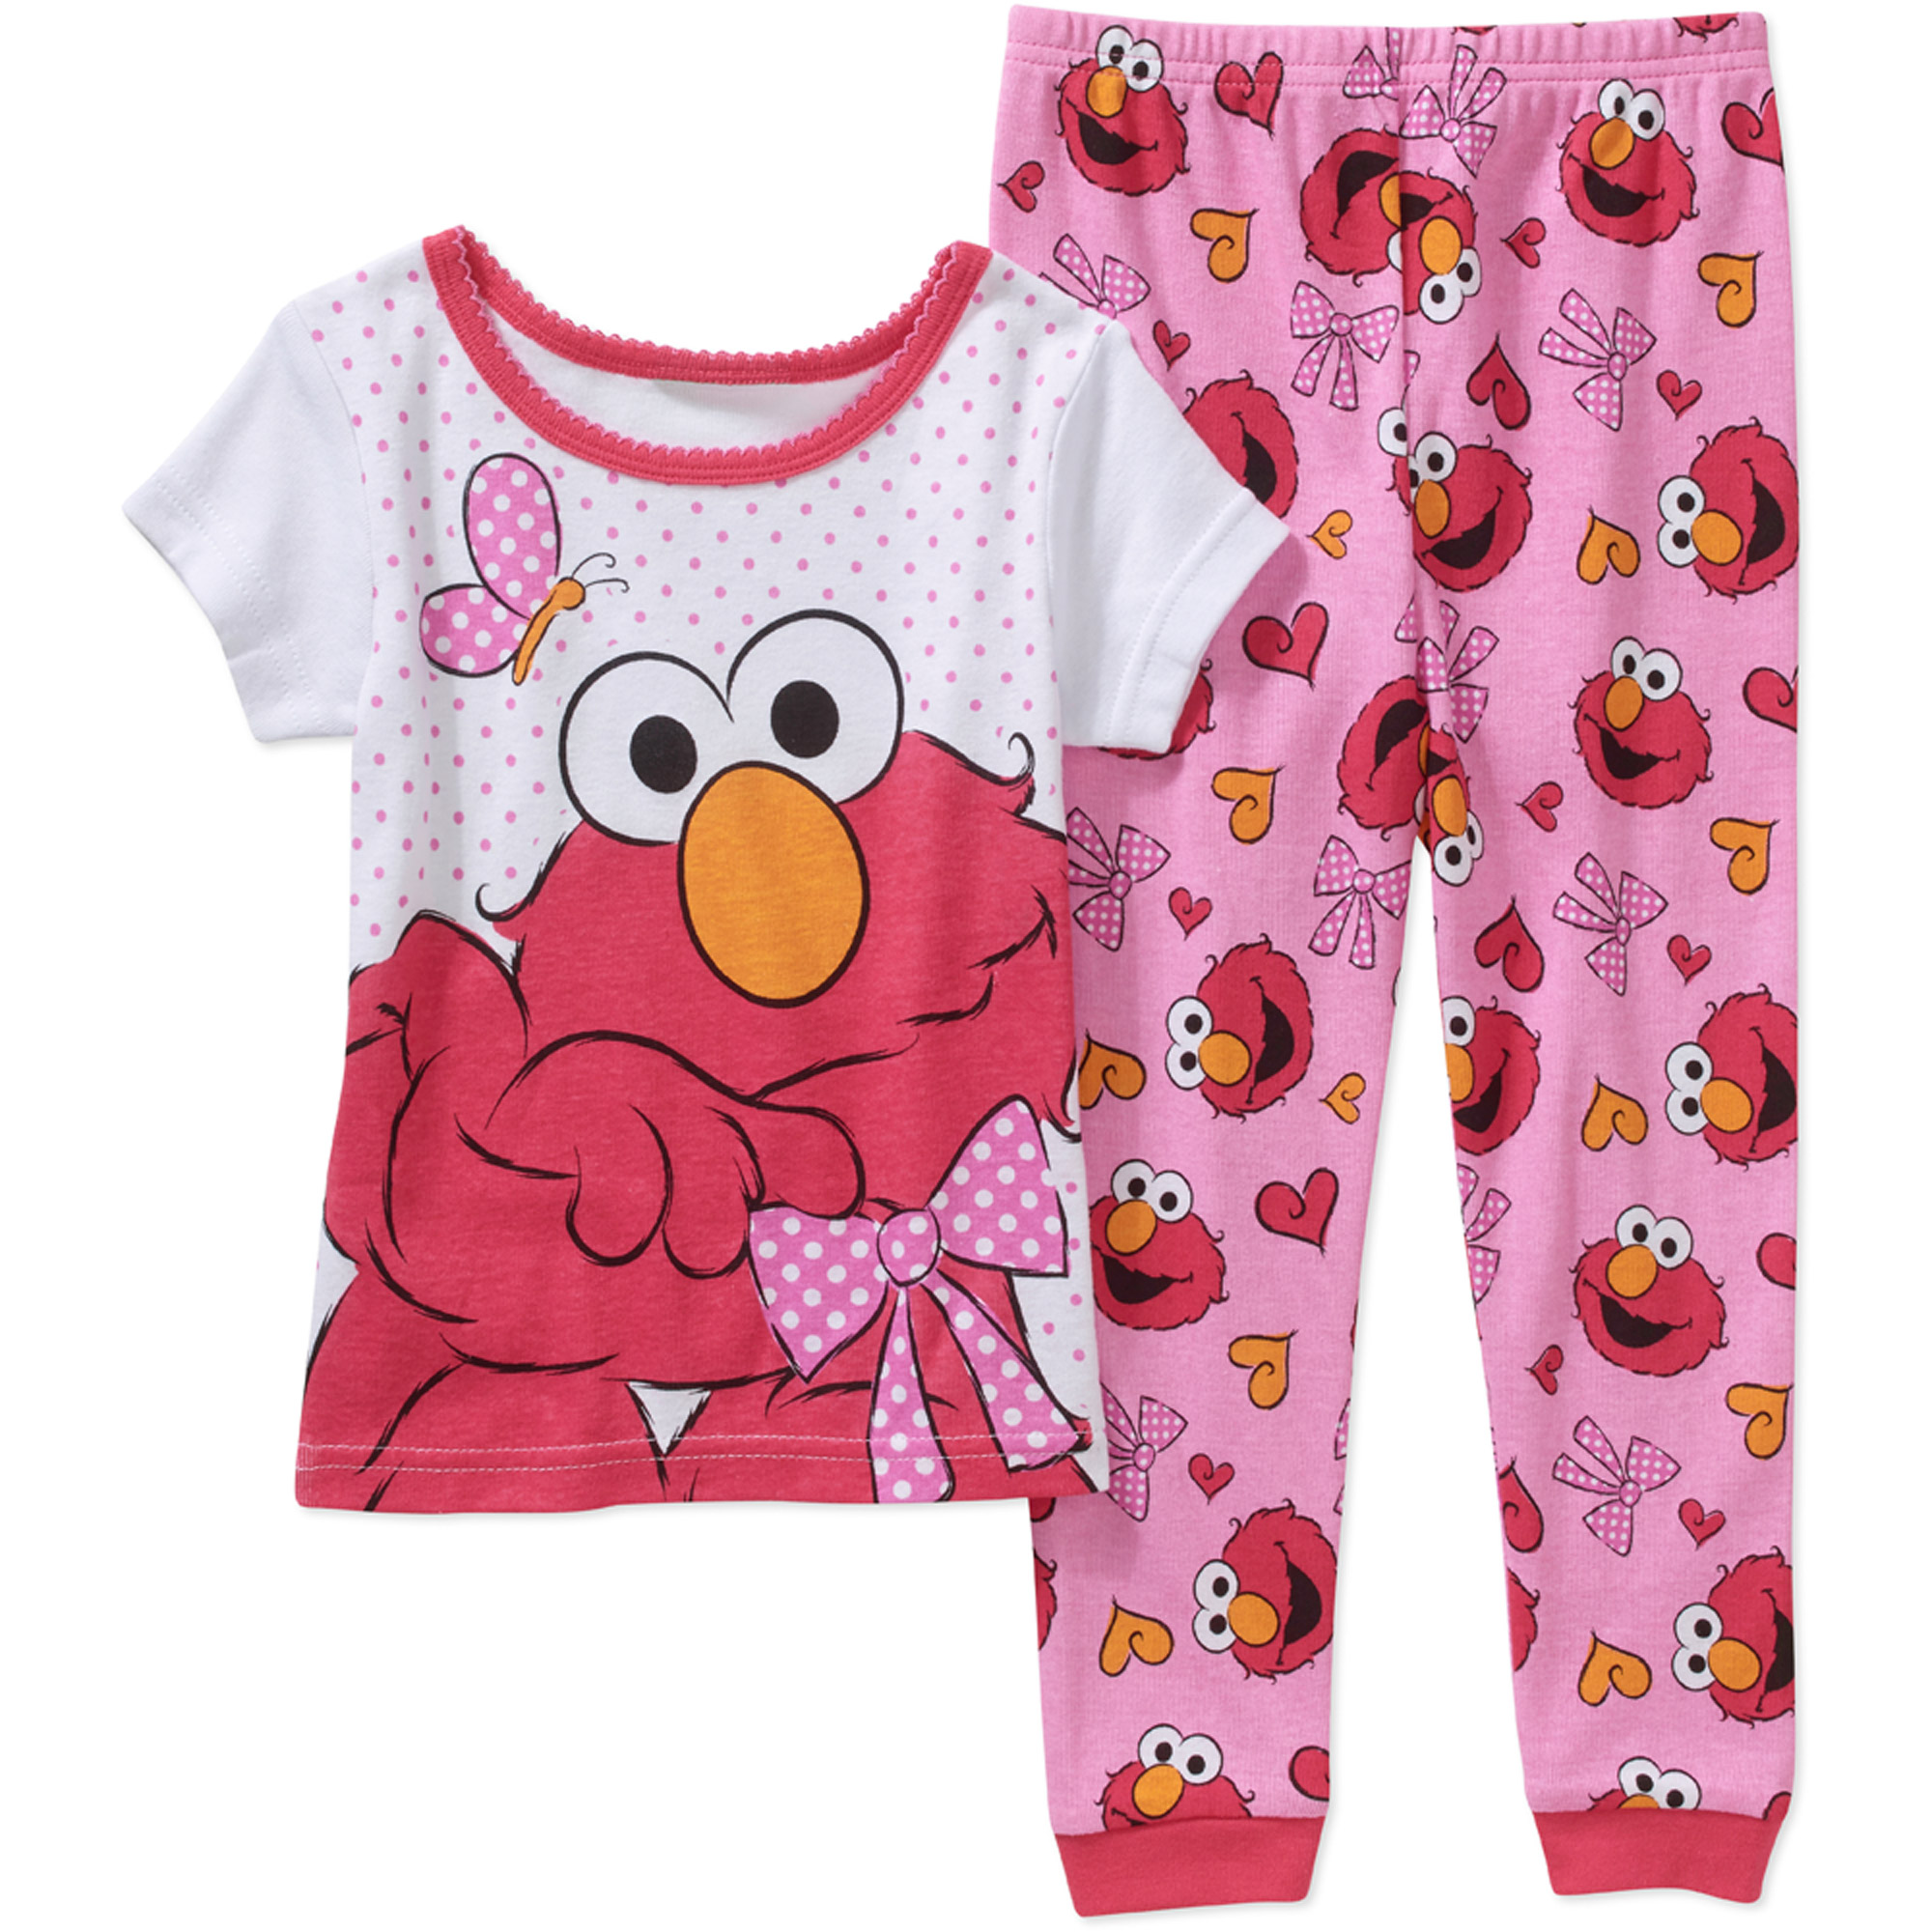 Elmo Baby Toddler Girl Short Sleeve Cotton Tight Fit Sleepwear Set